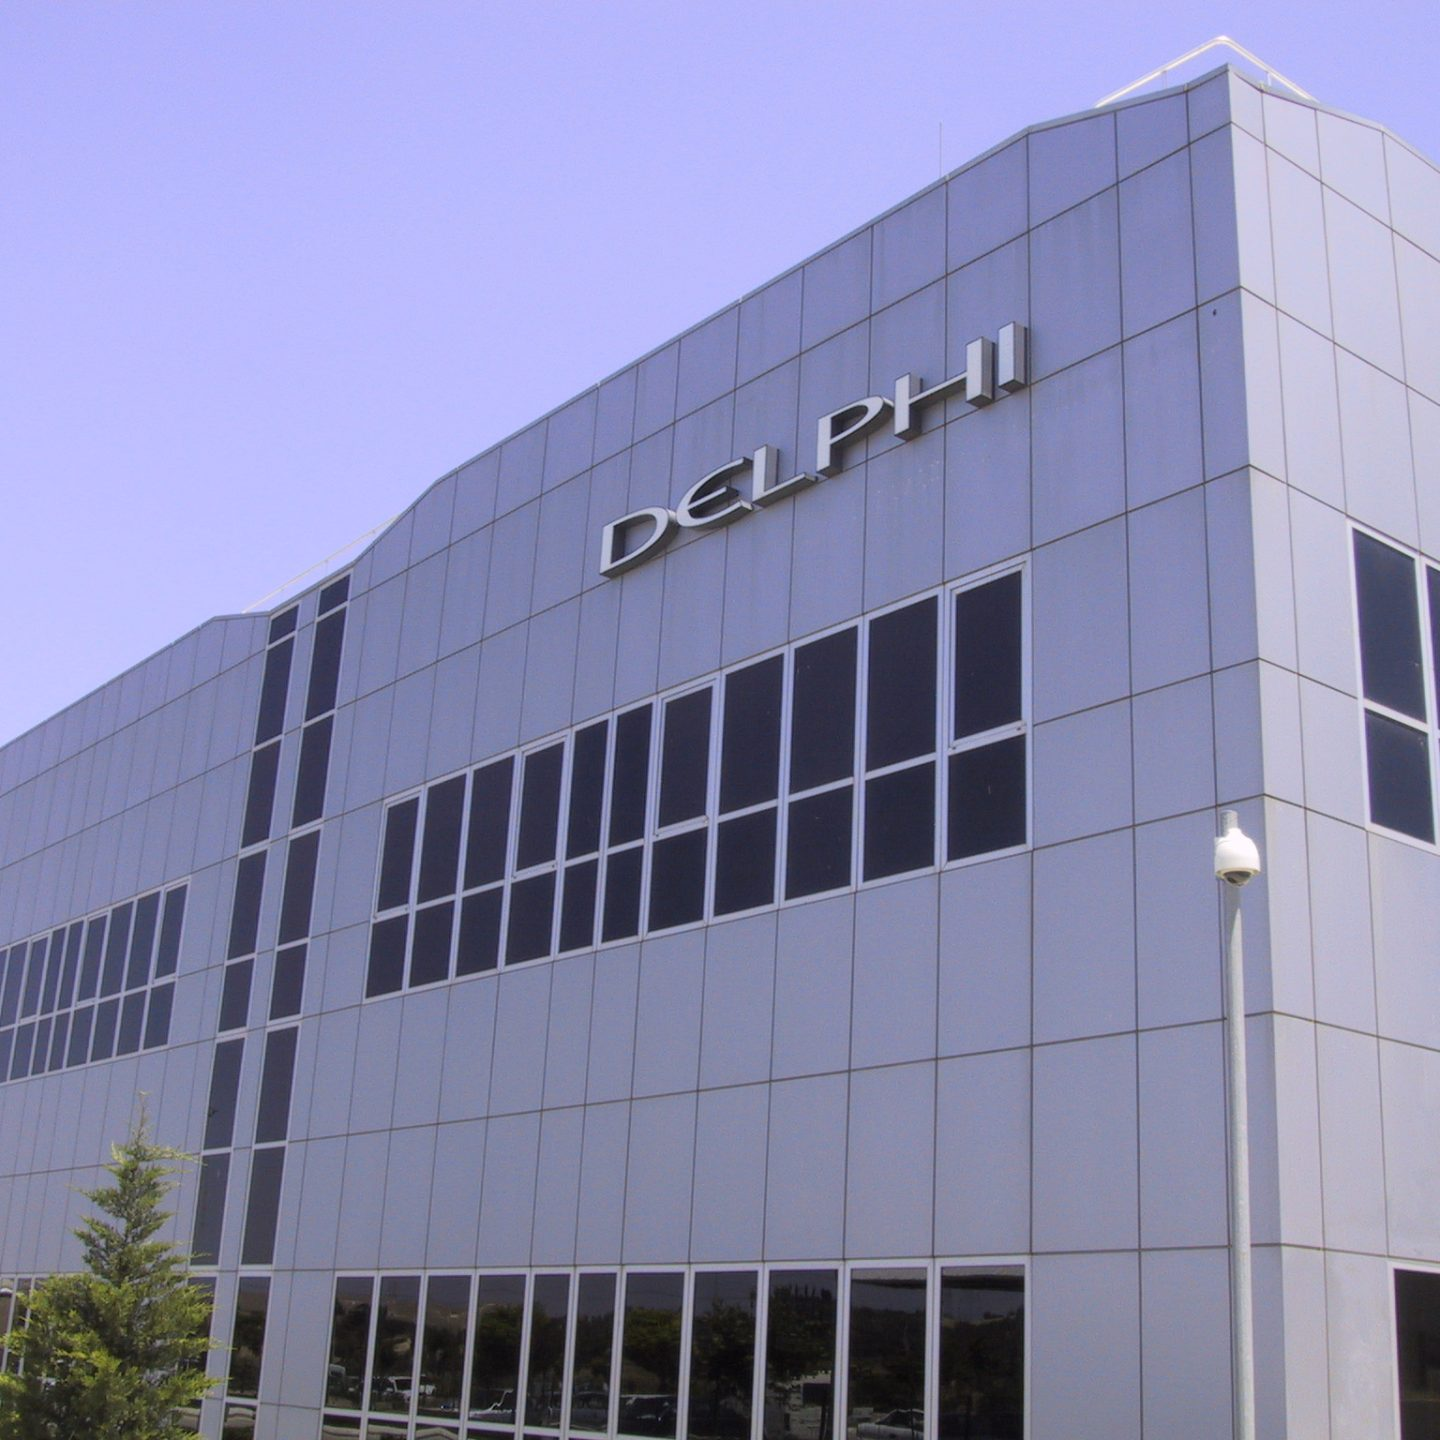 Delphi Ltd. Co. / New Office Building